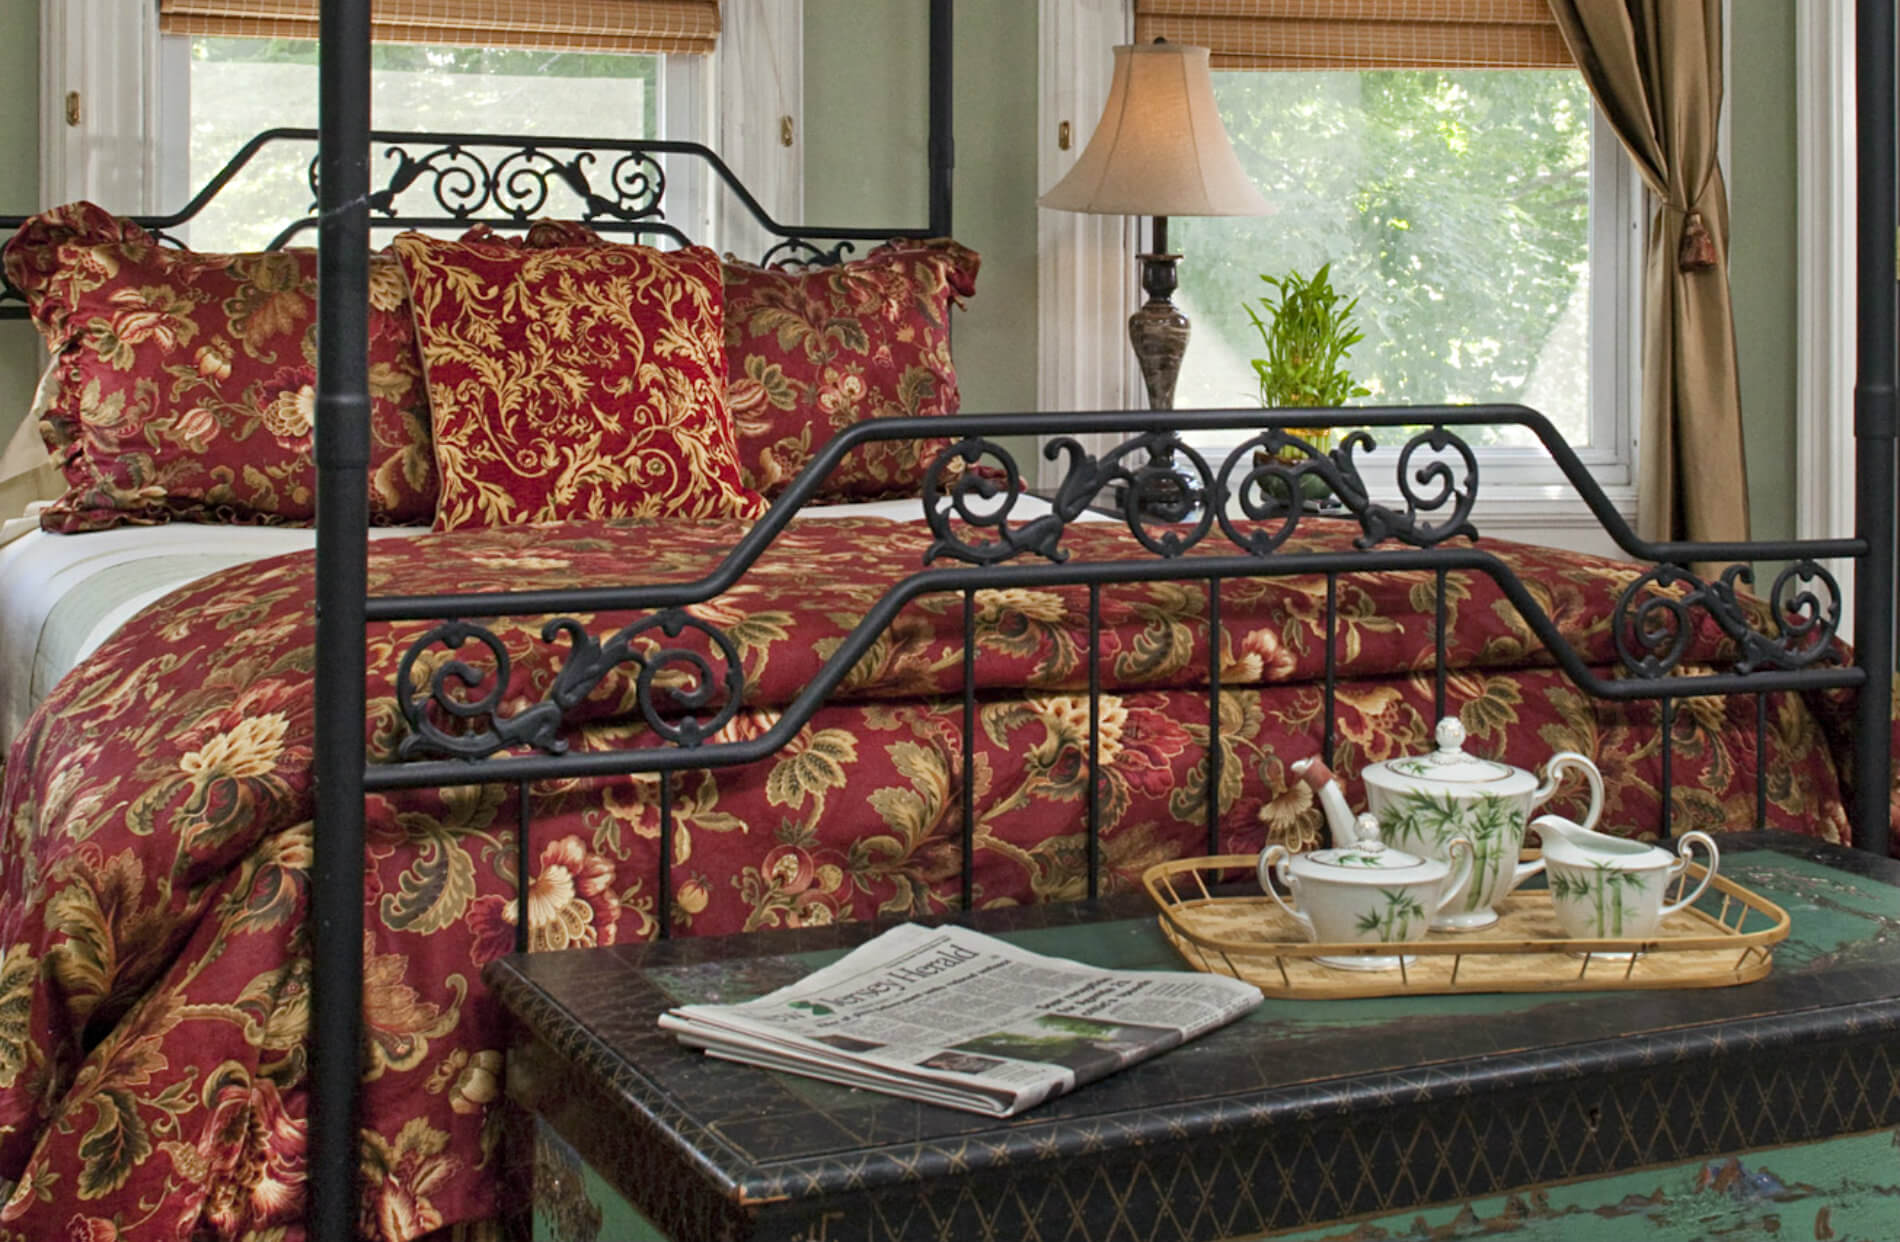 Ornate iron bed with red and gold beddding